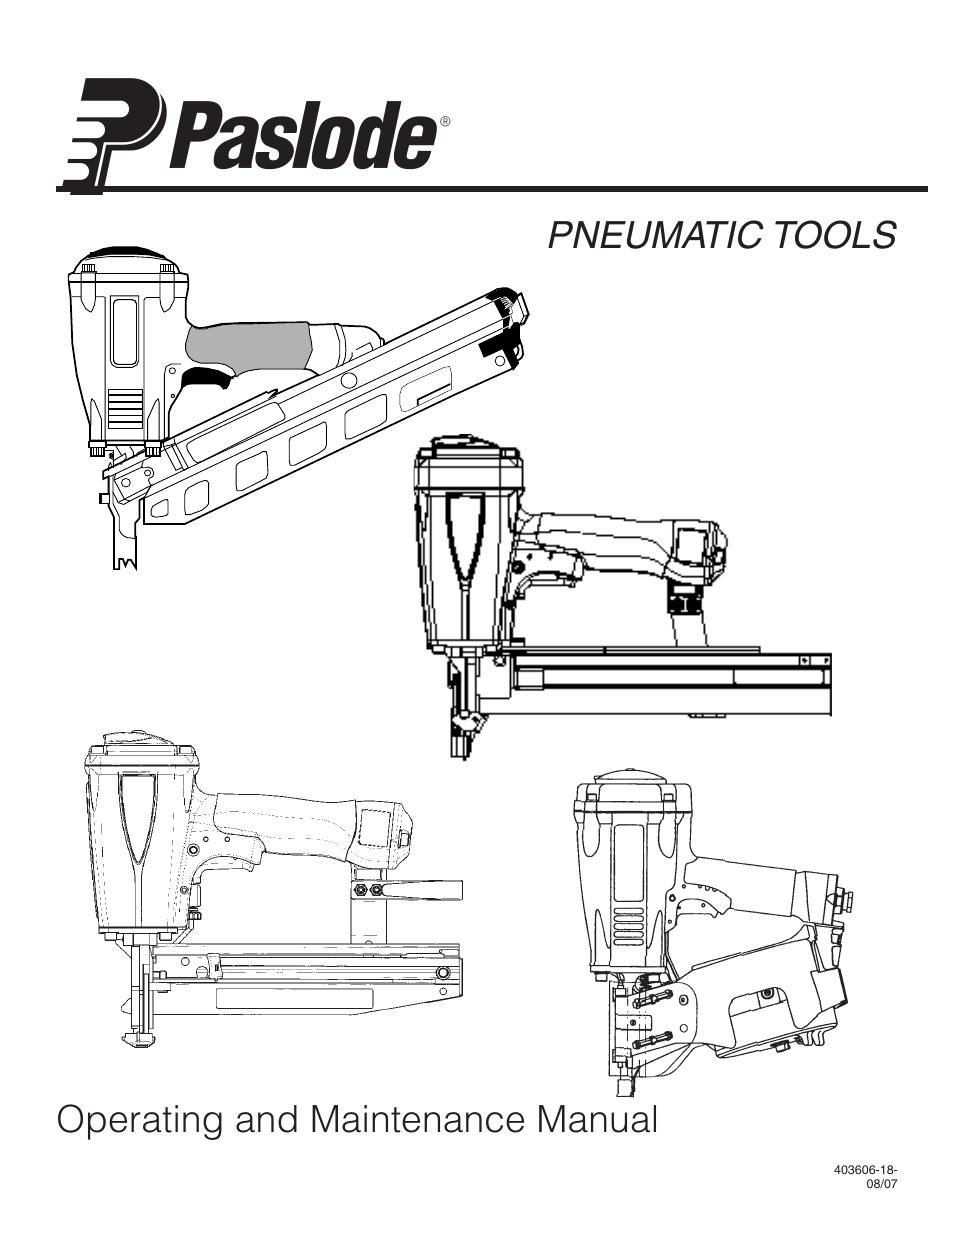 Paslode F350-S PowerMaster Plus 30 Framing Nailer User